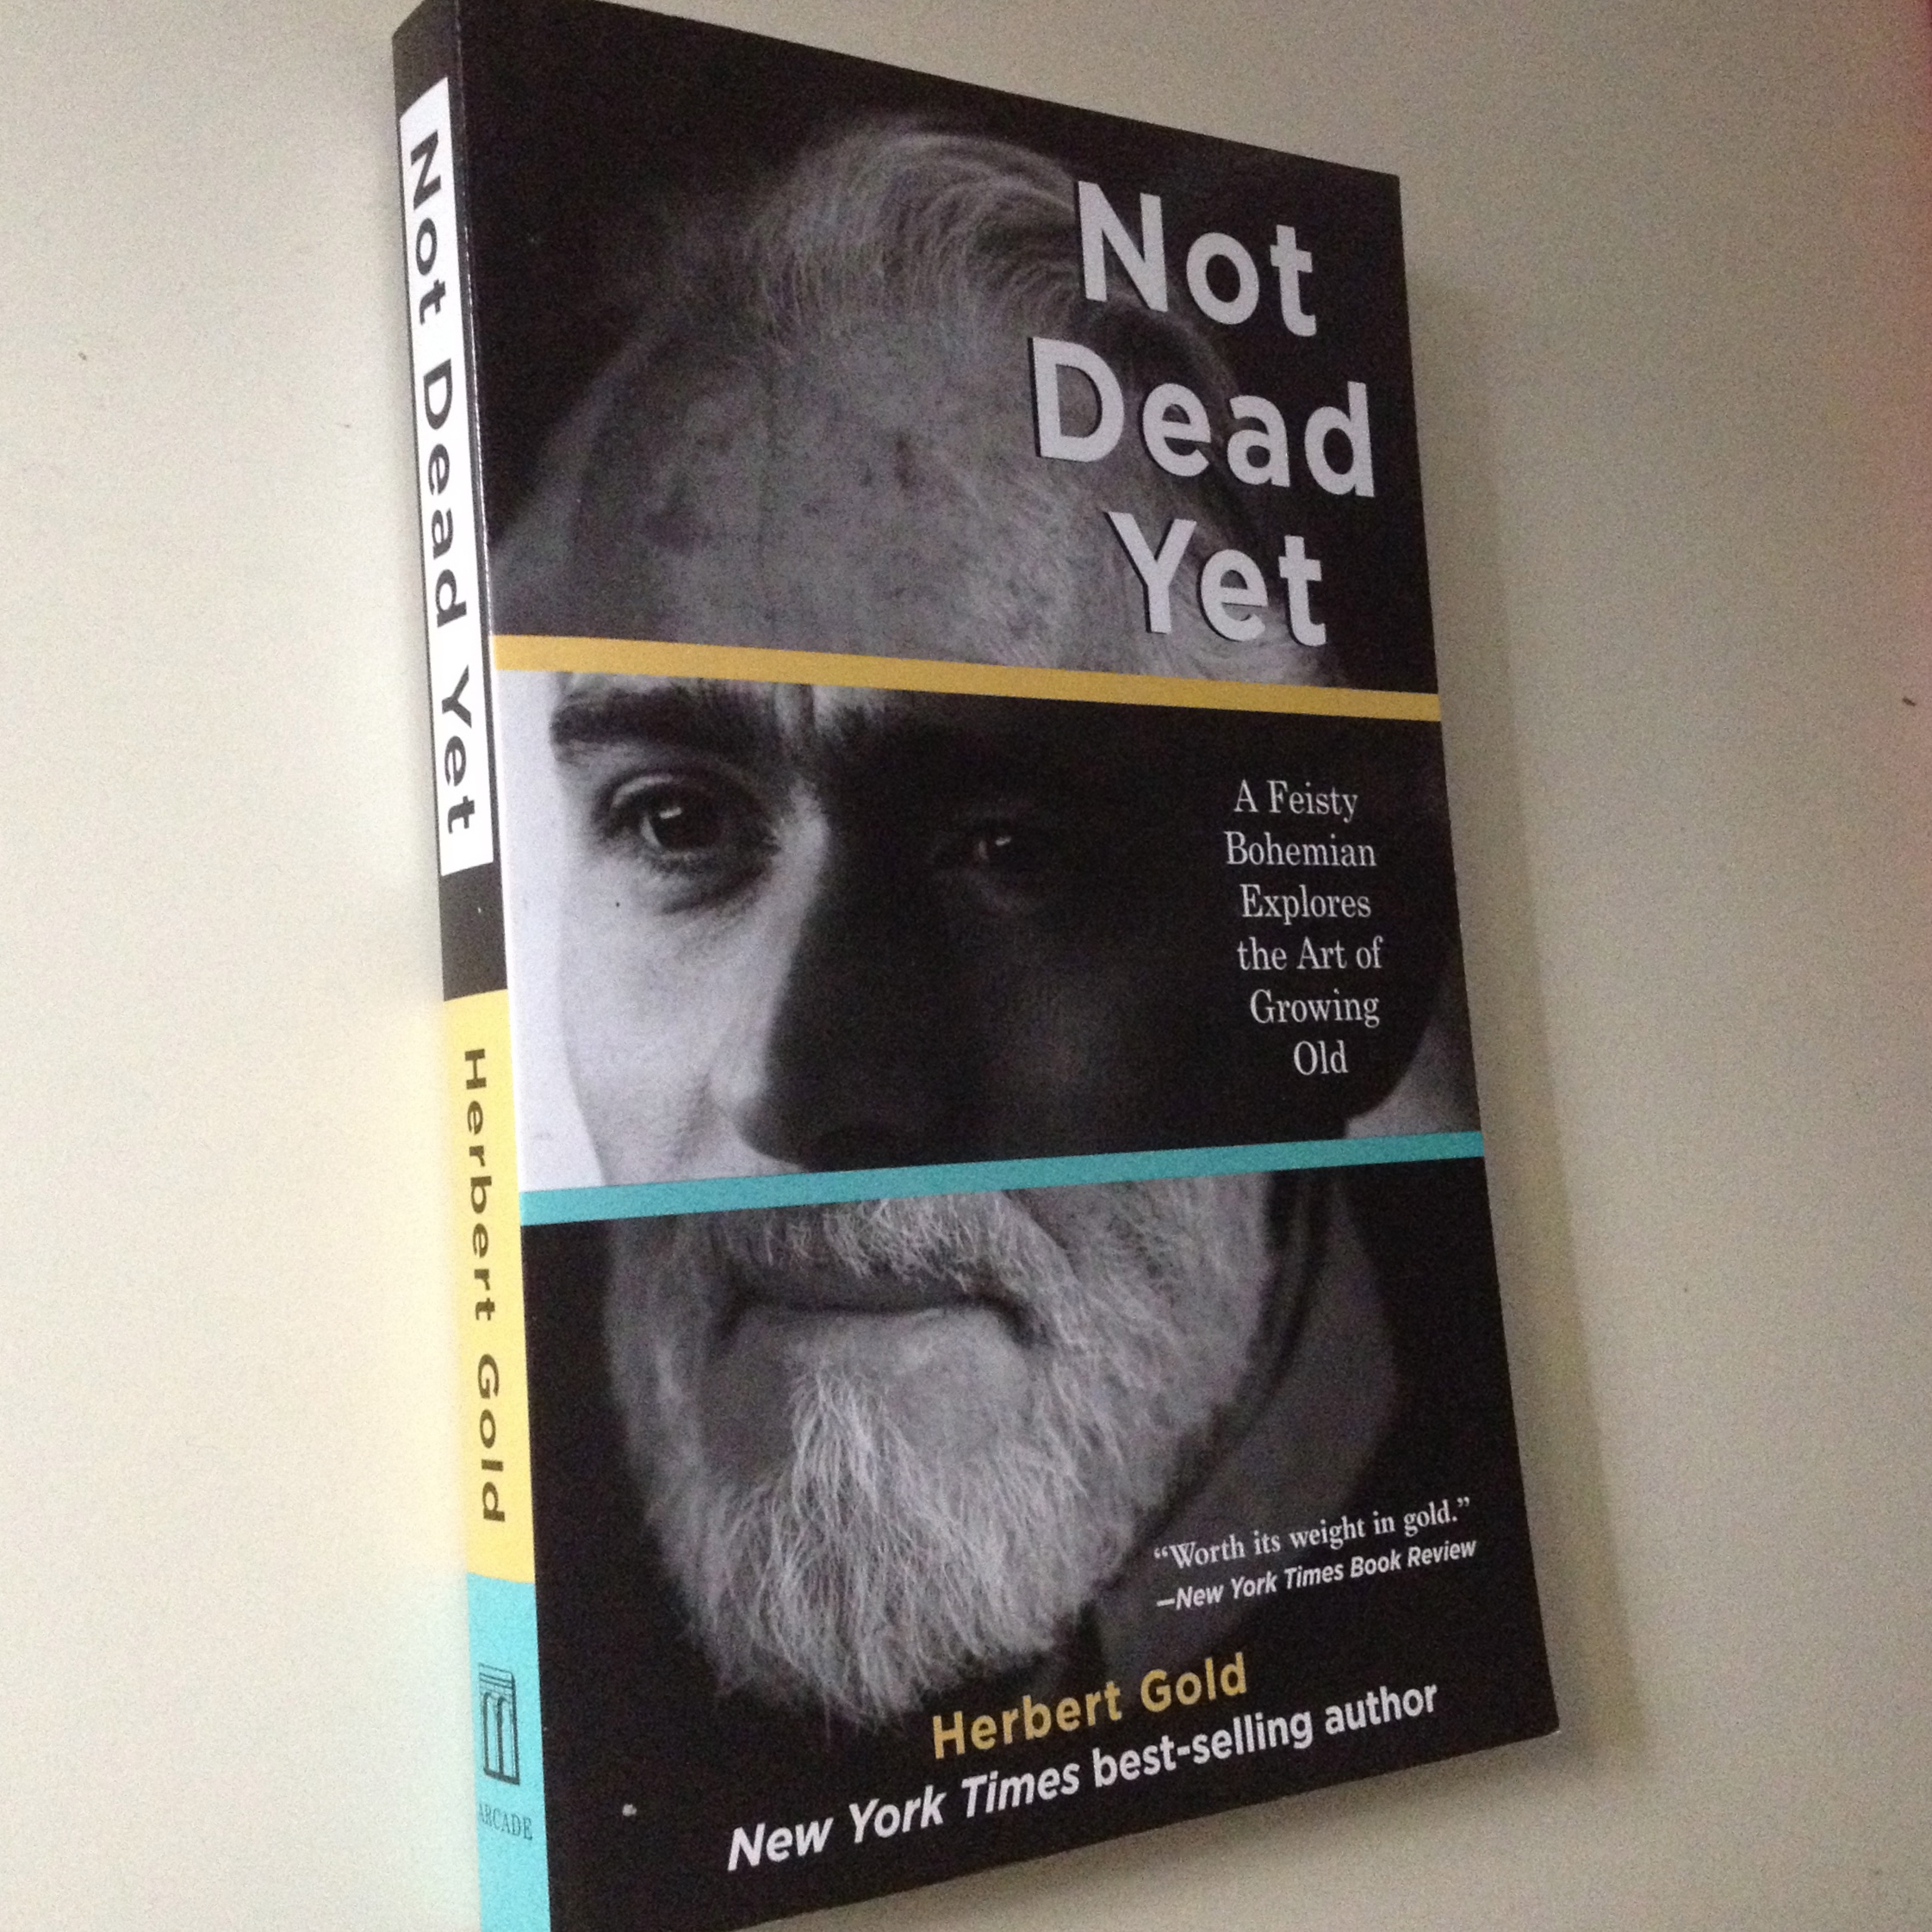 Not Dead Yet: A Feisty Bohemian Explores the Art of Growing Old - BUY NOW